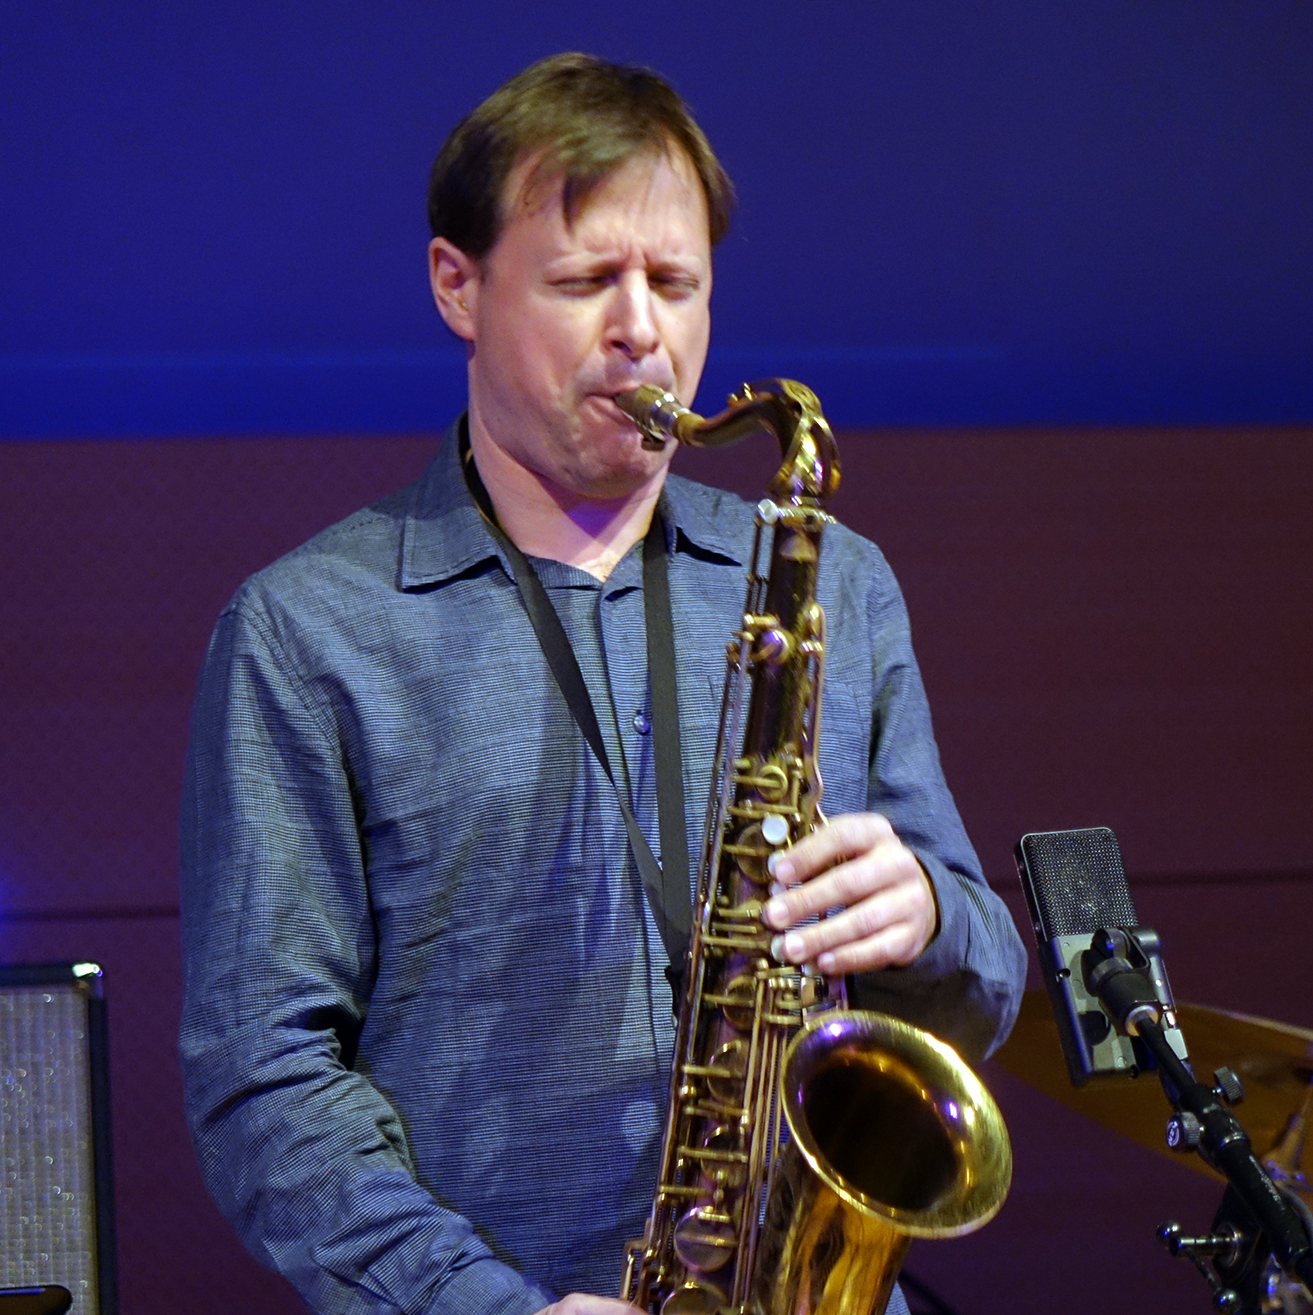 Chris Potter at NYC Winter JazzFest 2016